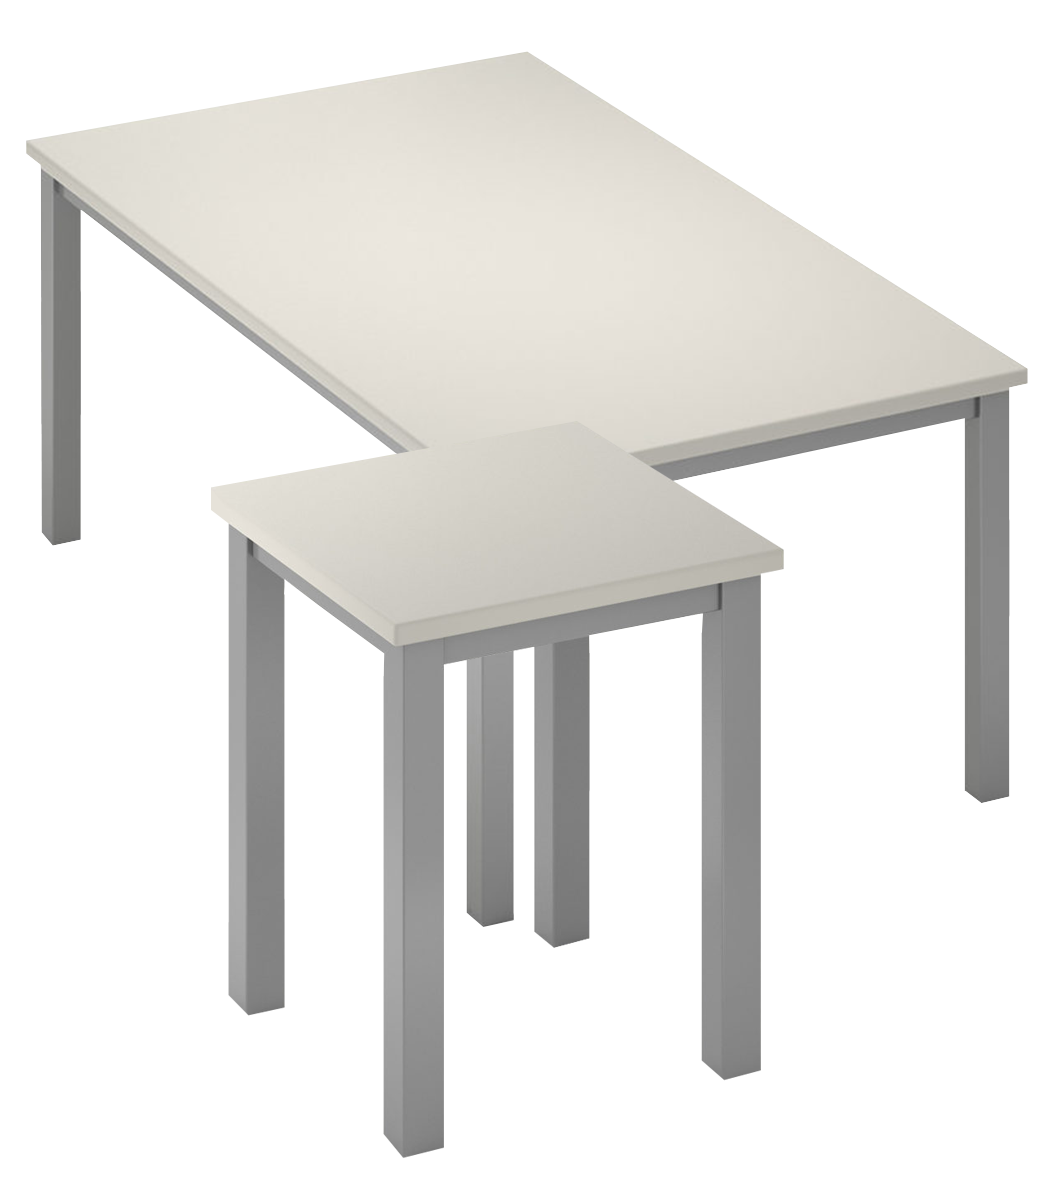 Table. Valley design partner at